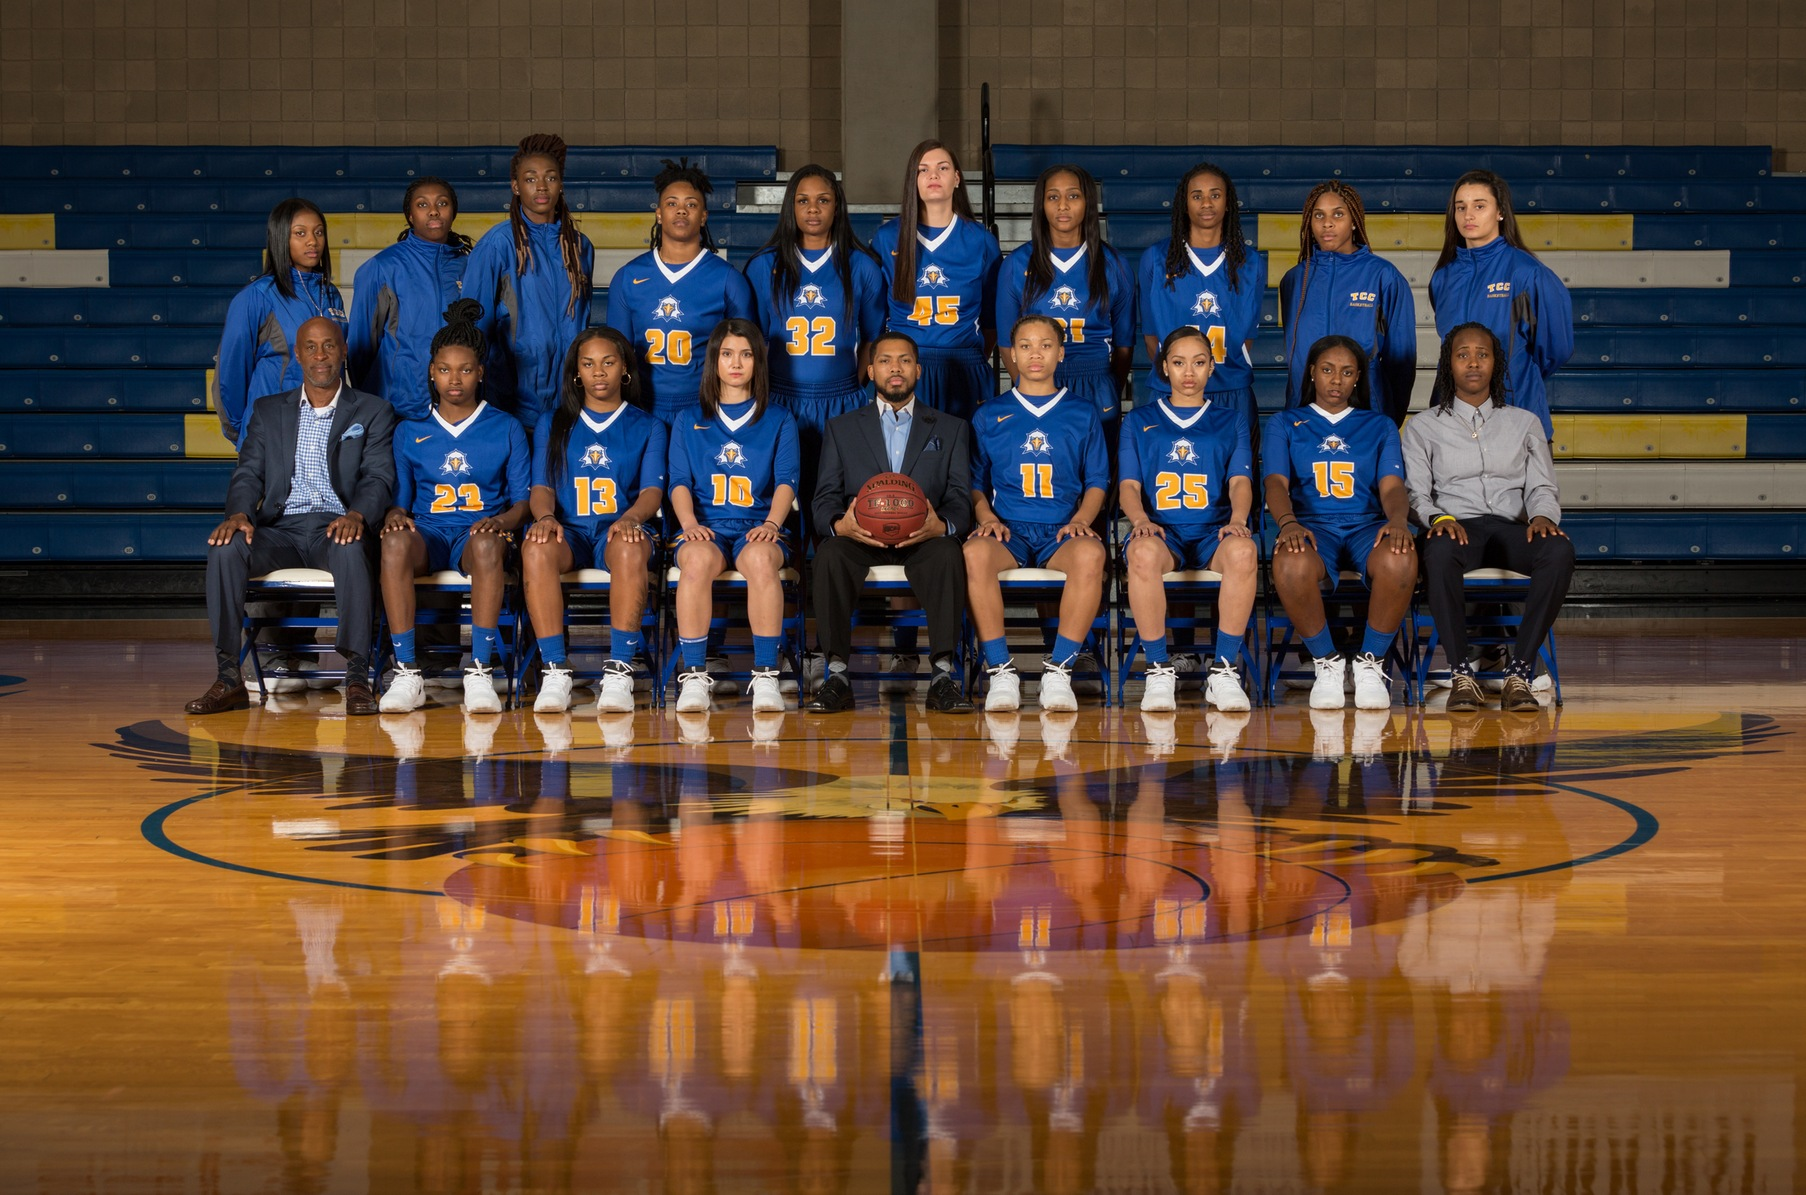 2017-18 Tallahassee Community College Women's Basketball